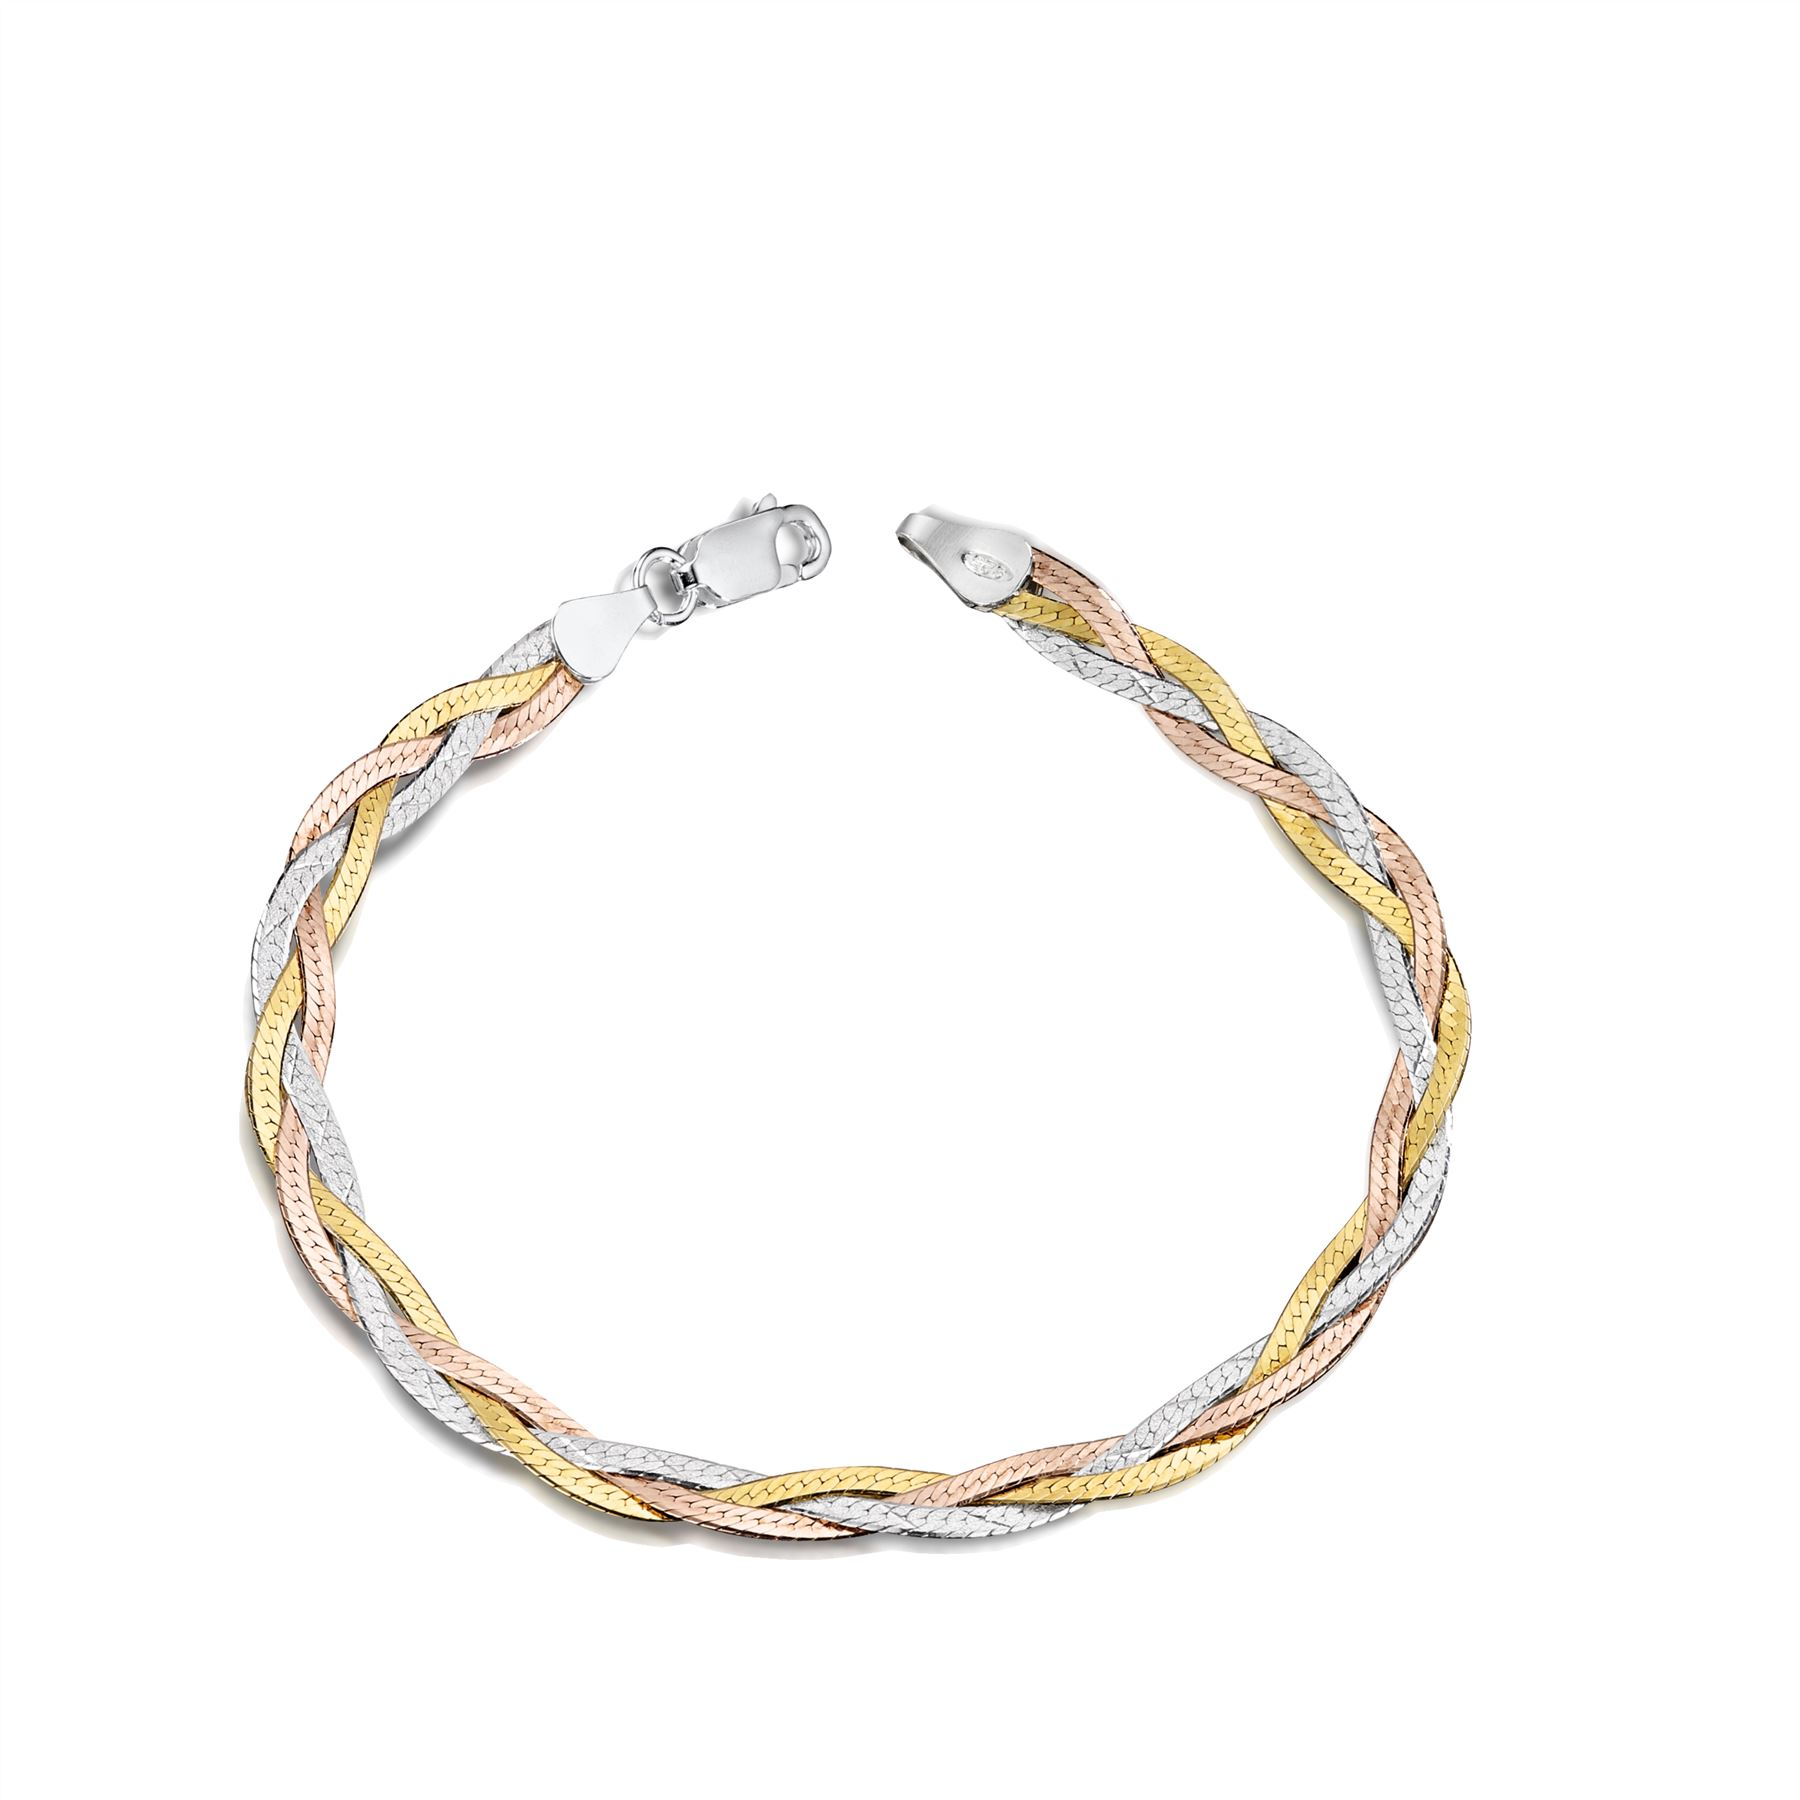 Amberta-Jewelry-Genuine-925-Sterling-Silver-Bracelet-Bangle-Chain-Made-in-Italy thumbnail 104